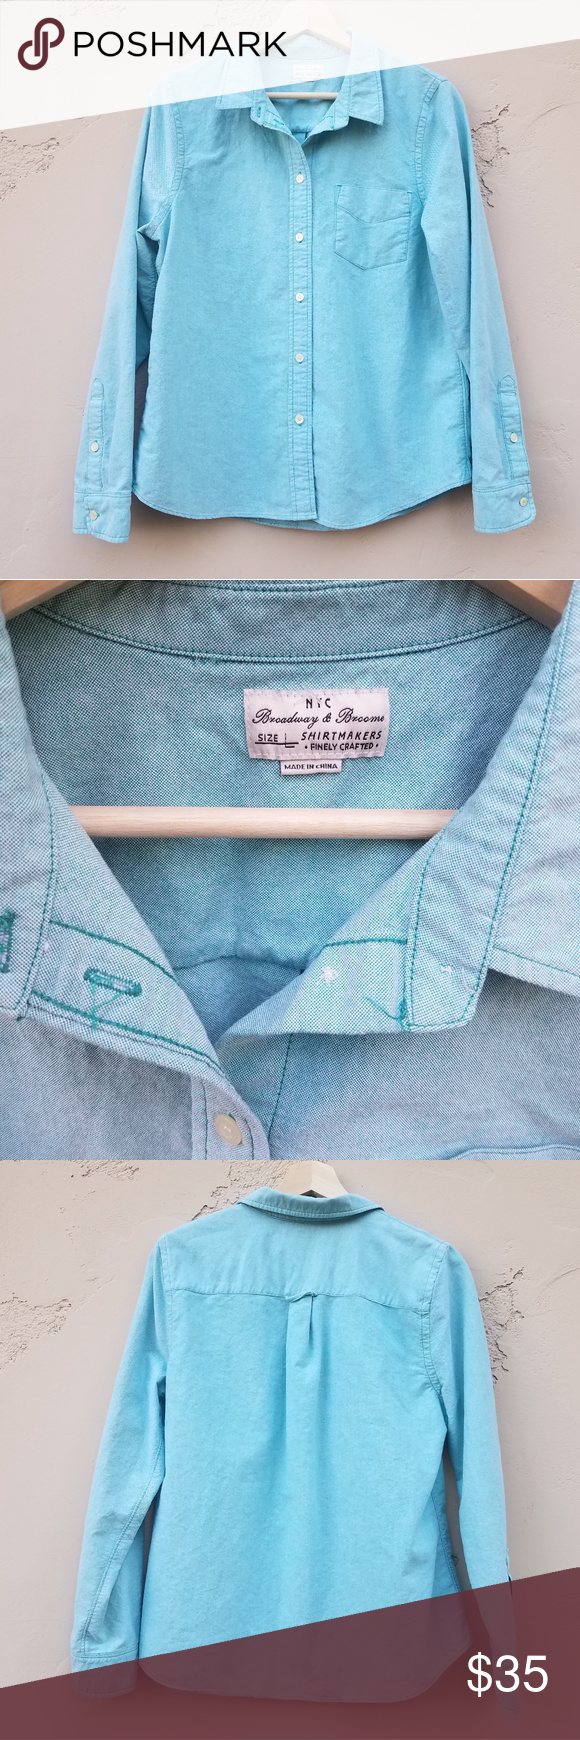 77e8d5818625 Broadway And Broome Blue Oxford Shirt Size Large Long sleeve Madewell True  Love Shrunken Oxford Button down shirt top blouse Madewell Tops Button Down  ...